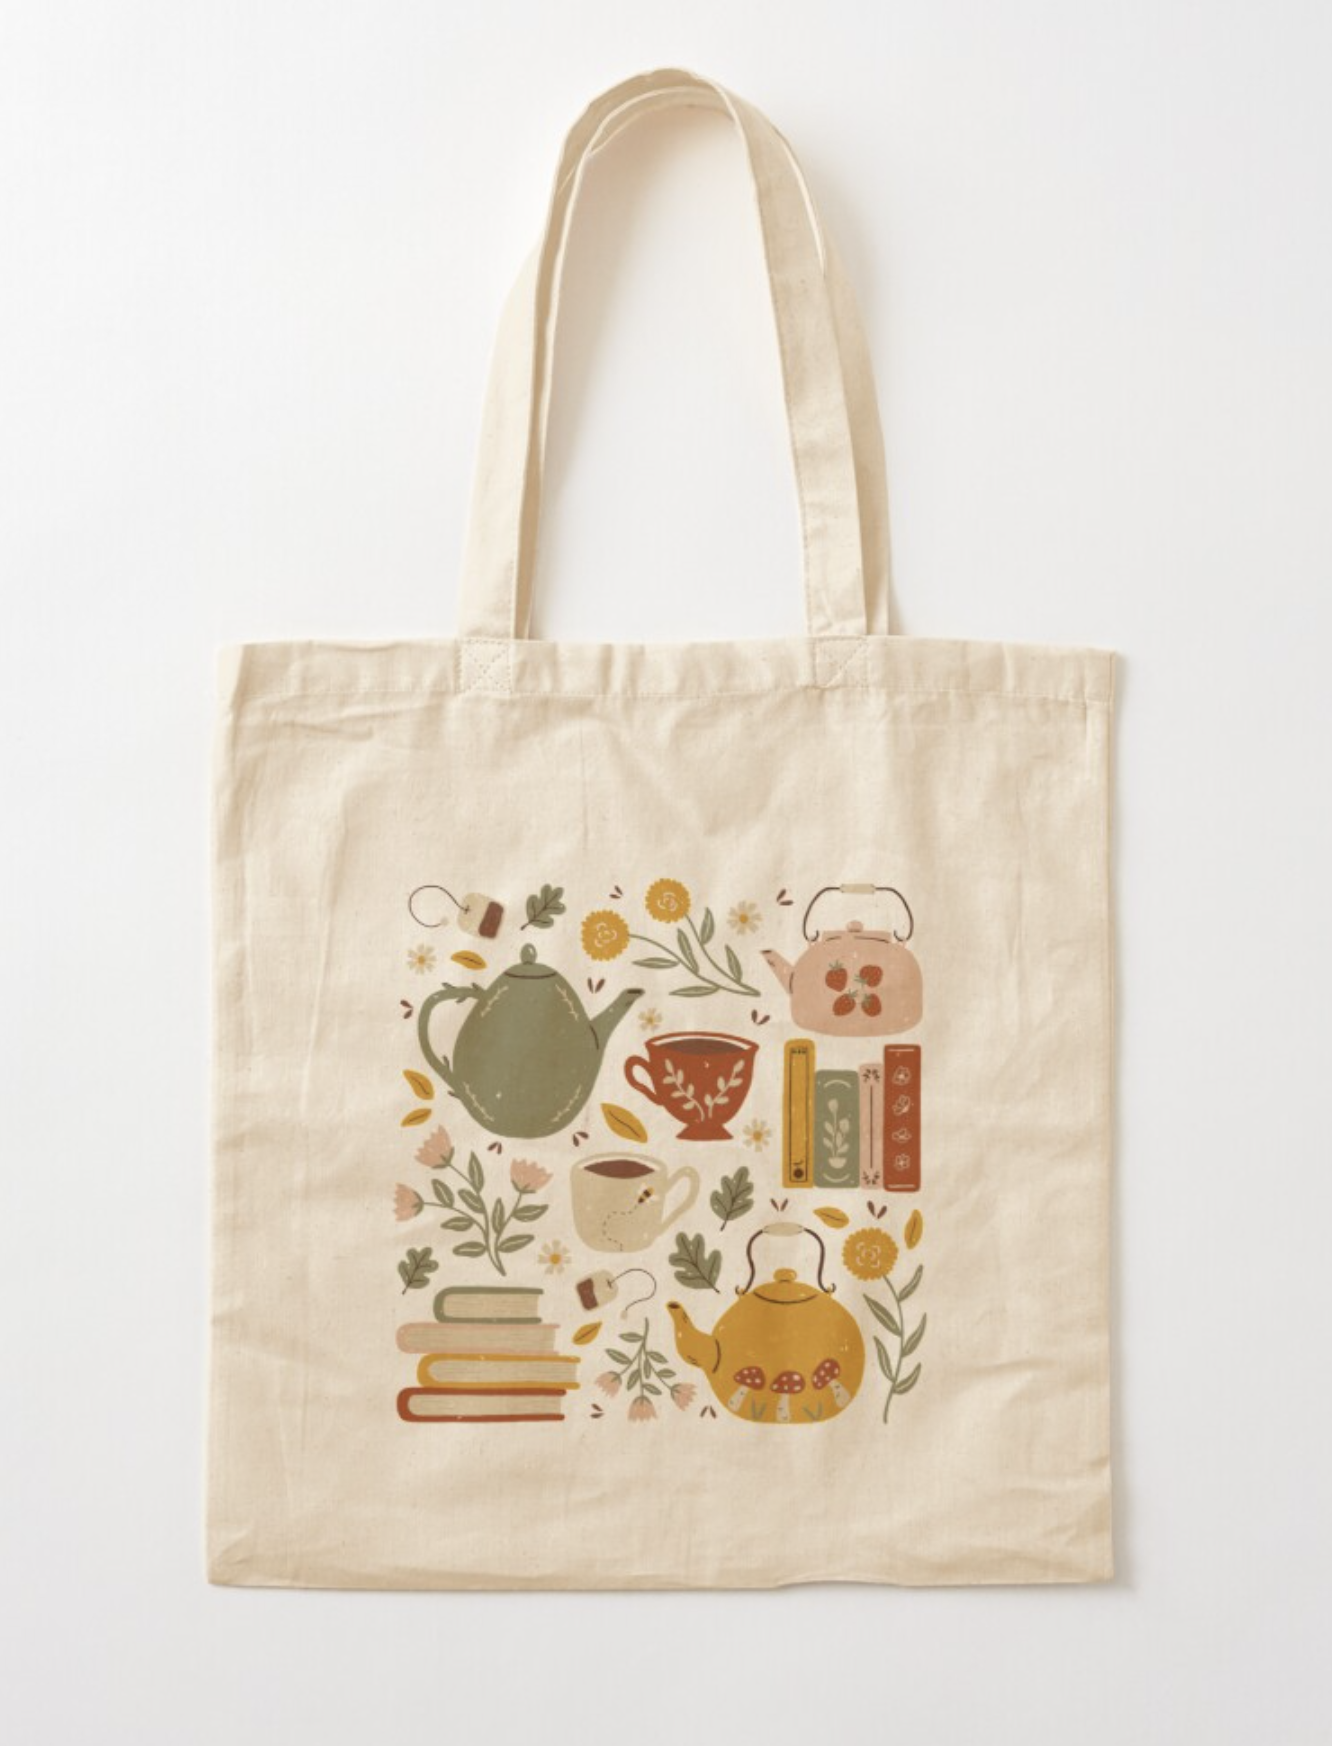 A vintage-style tote bag with whimsical illustration of teapots, teacups, plants, flowers, and books